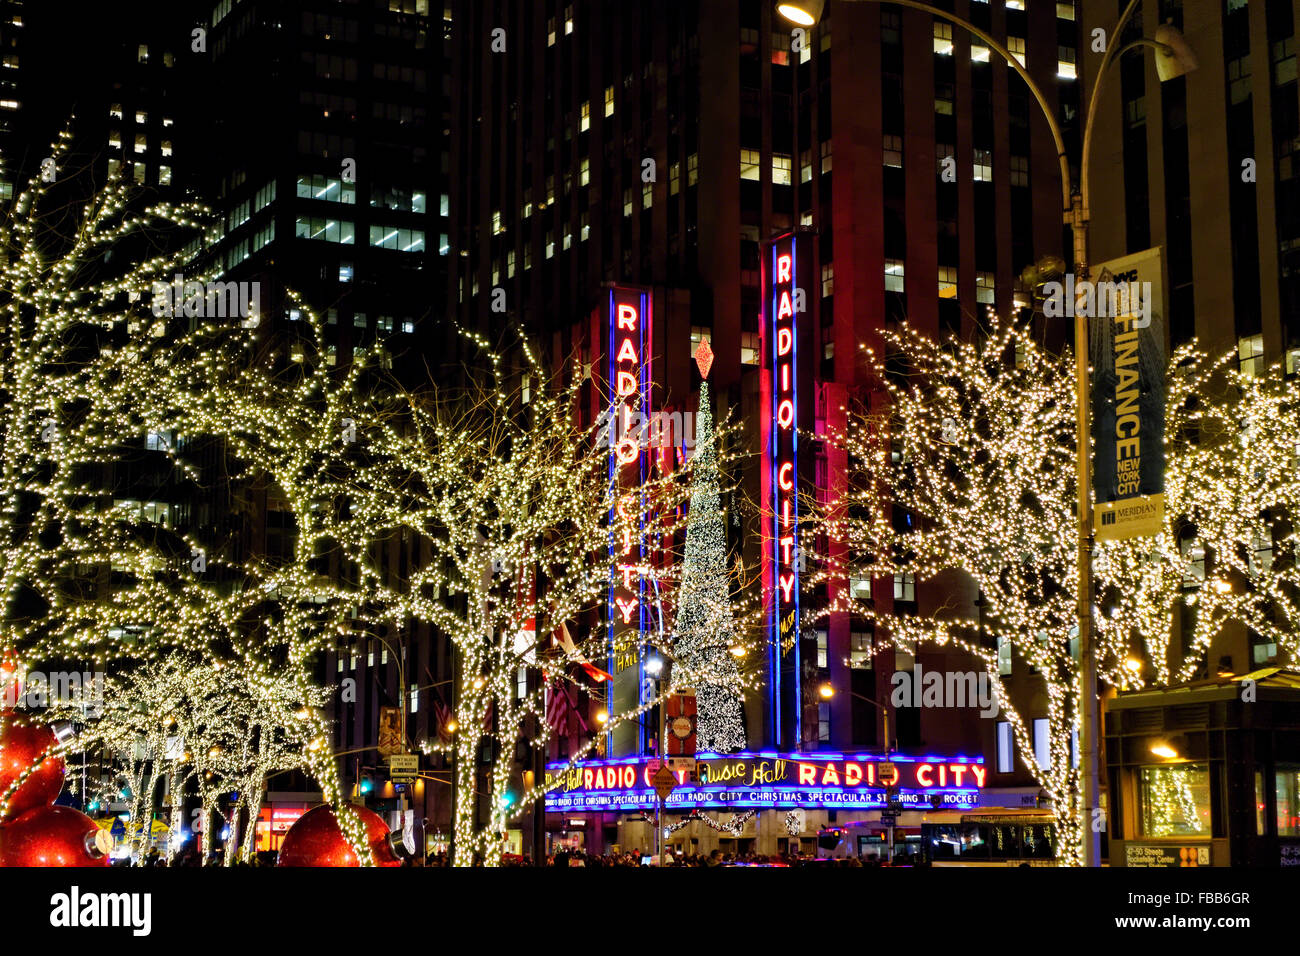 Low Angle View of the Radio City Music Hall Lit Up at Night During the Winter Holiday Season, Manhattan, New York Stock Photo